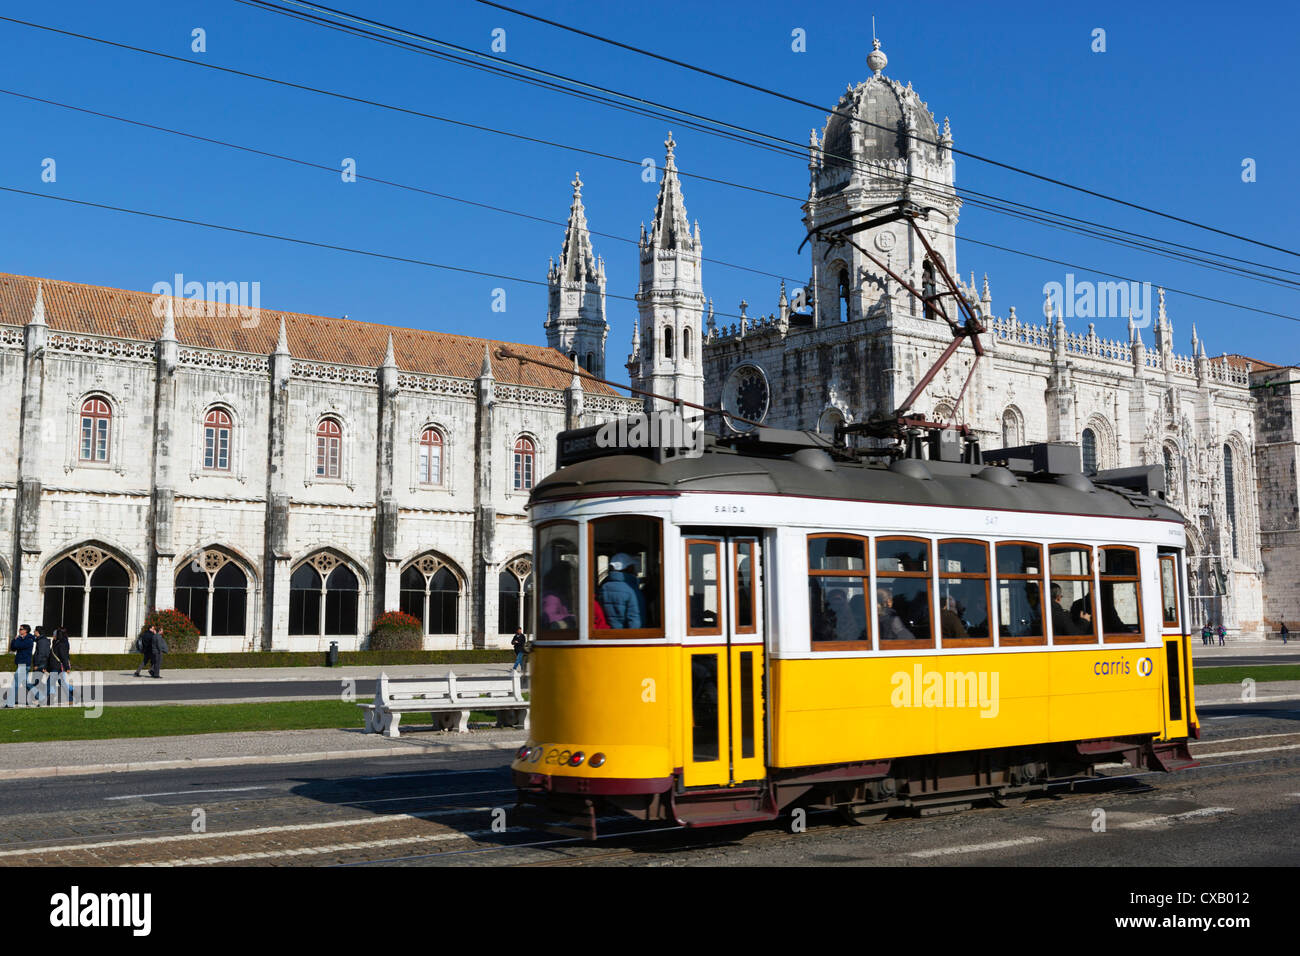 Mosteiro dos Jeronimos, UNESCO World Heritage Site, and tram (electricos), Belem, Lisbon, Portugal, Europe - Stock Image